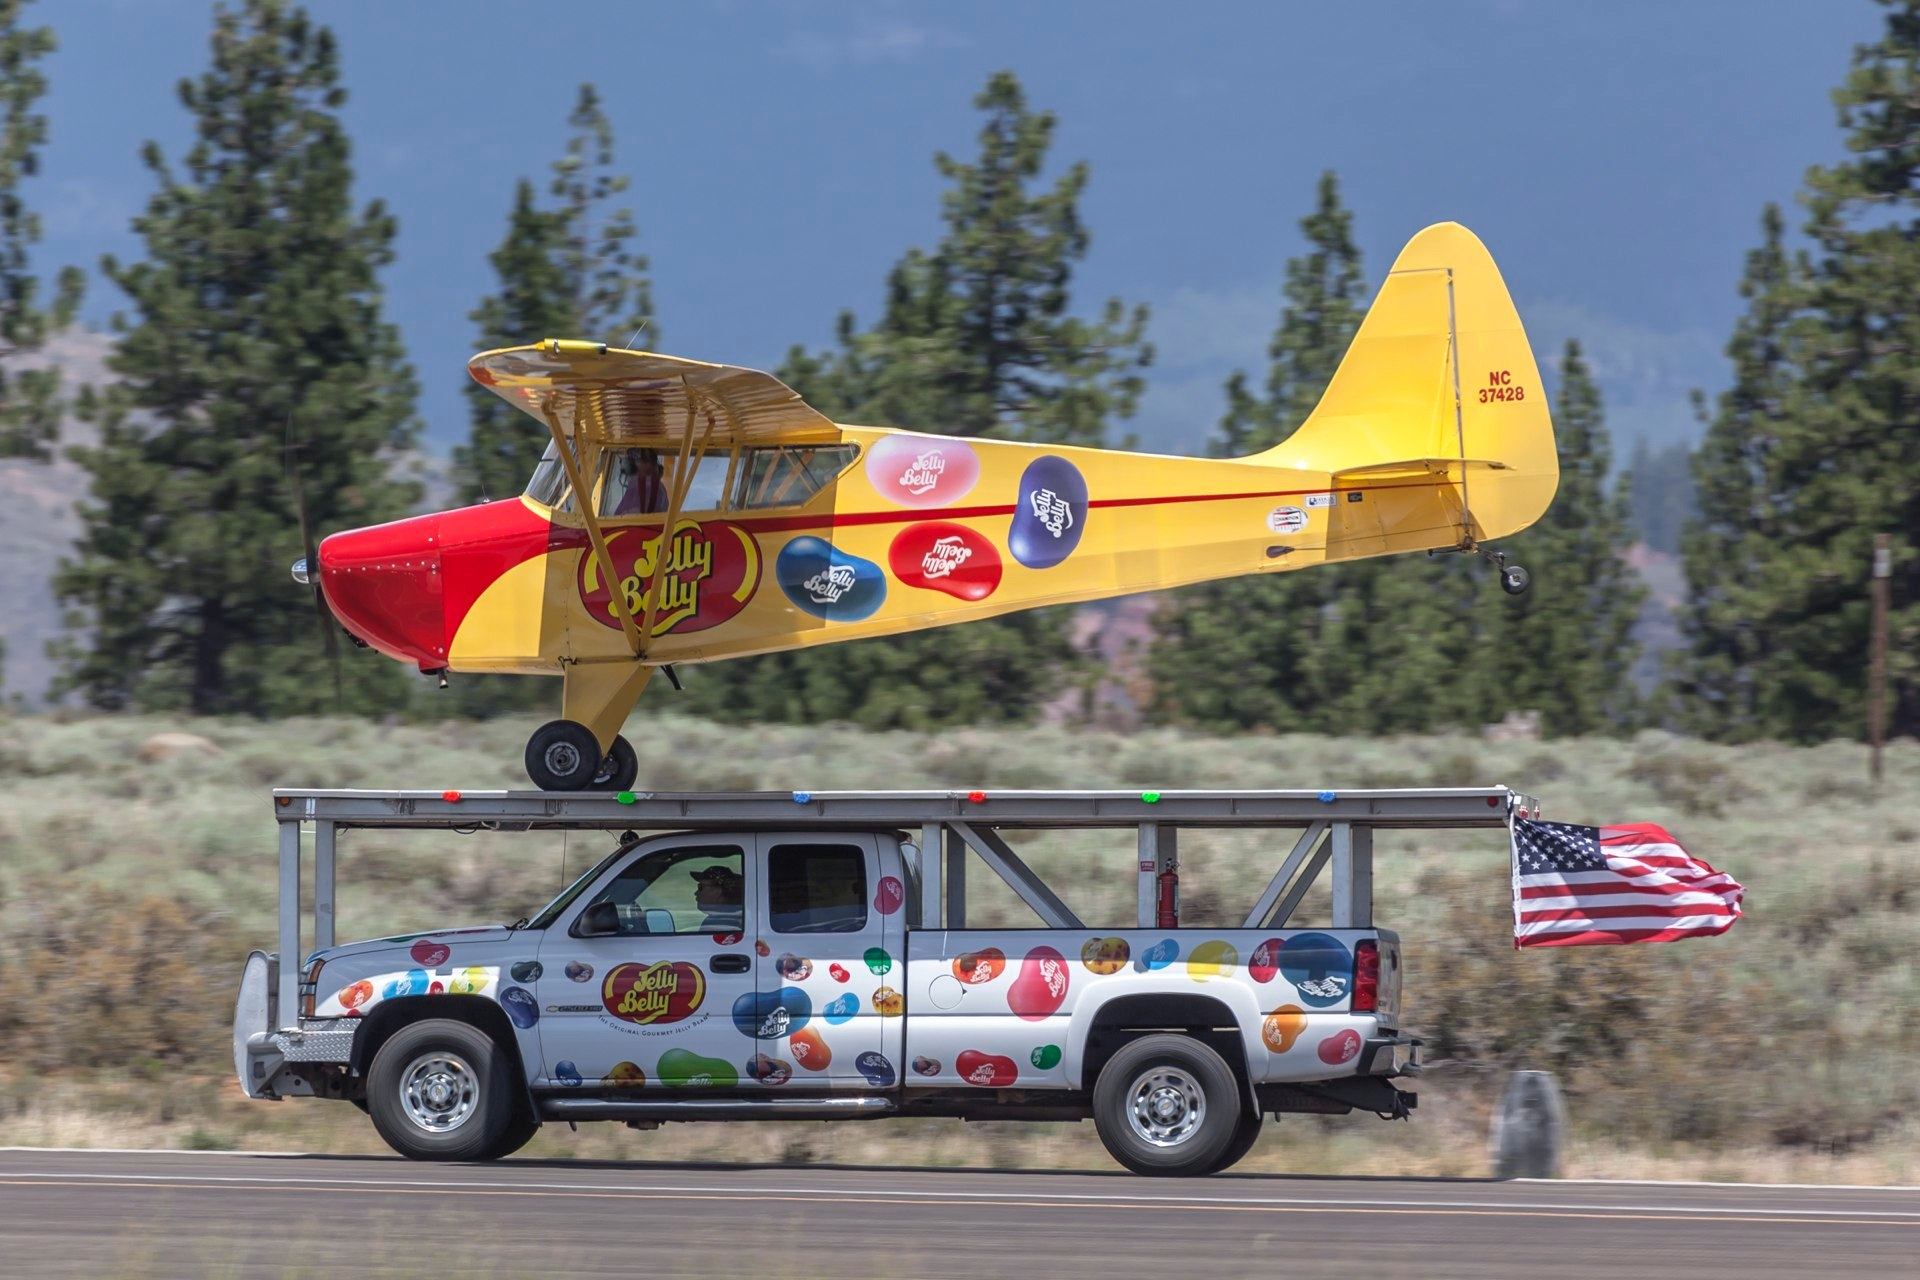 Jelly Belly truck and Airplane